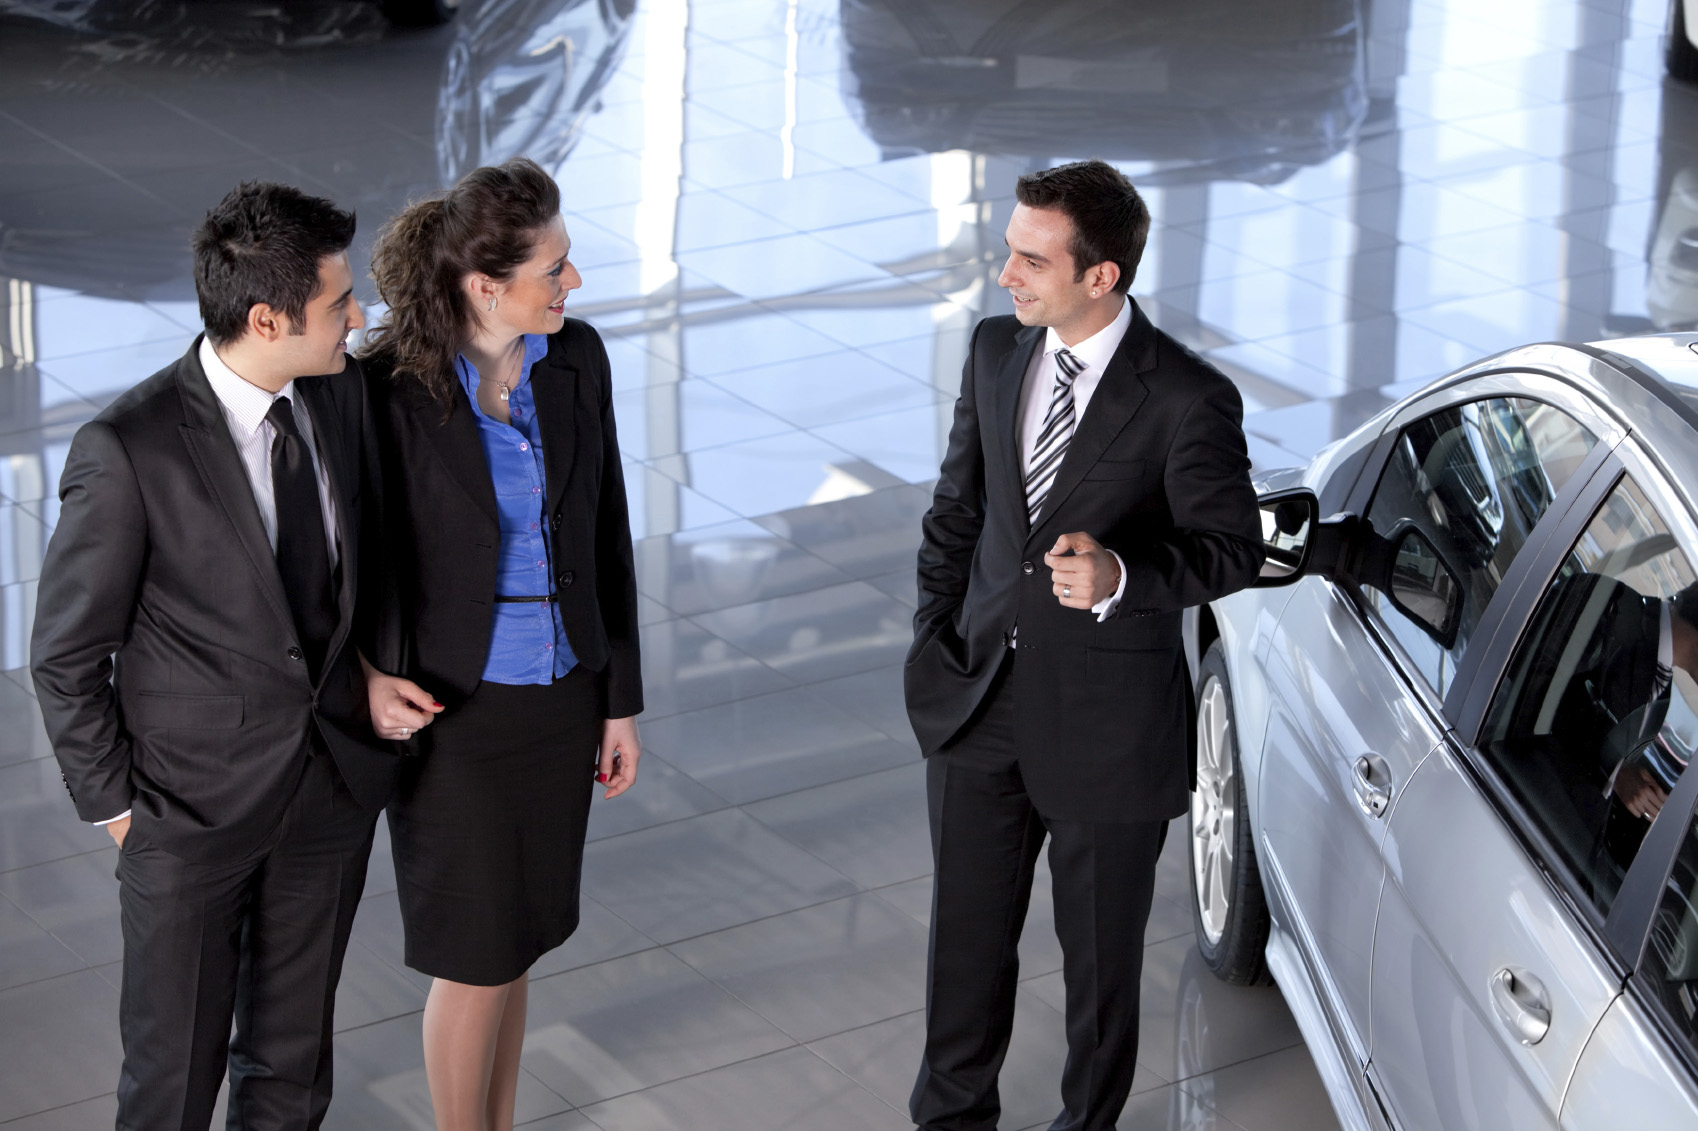 Lexus Hybrid Used Cars for Sale in Chantilly, VA